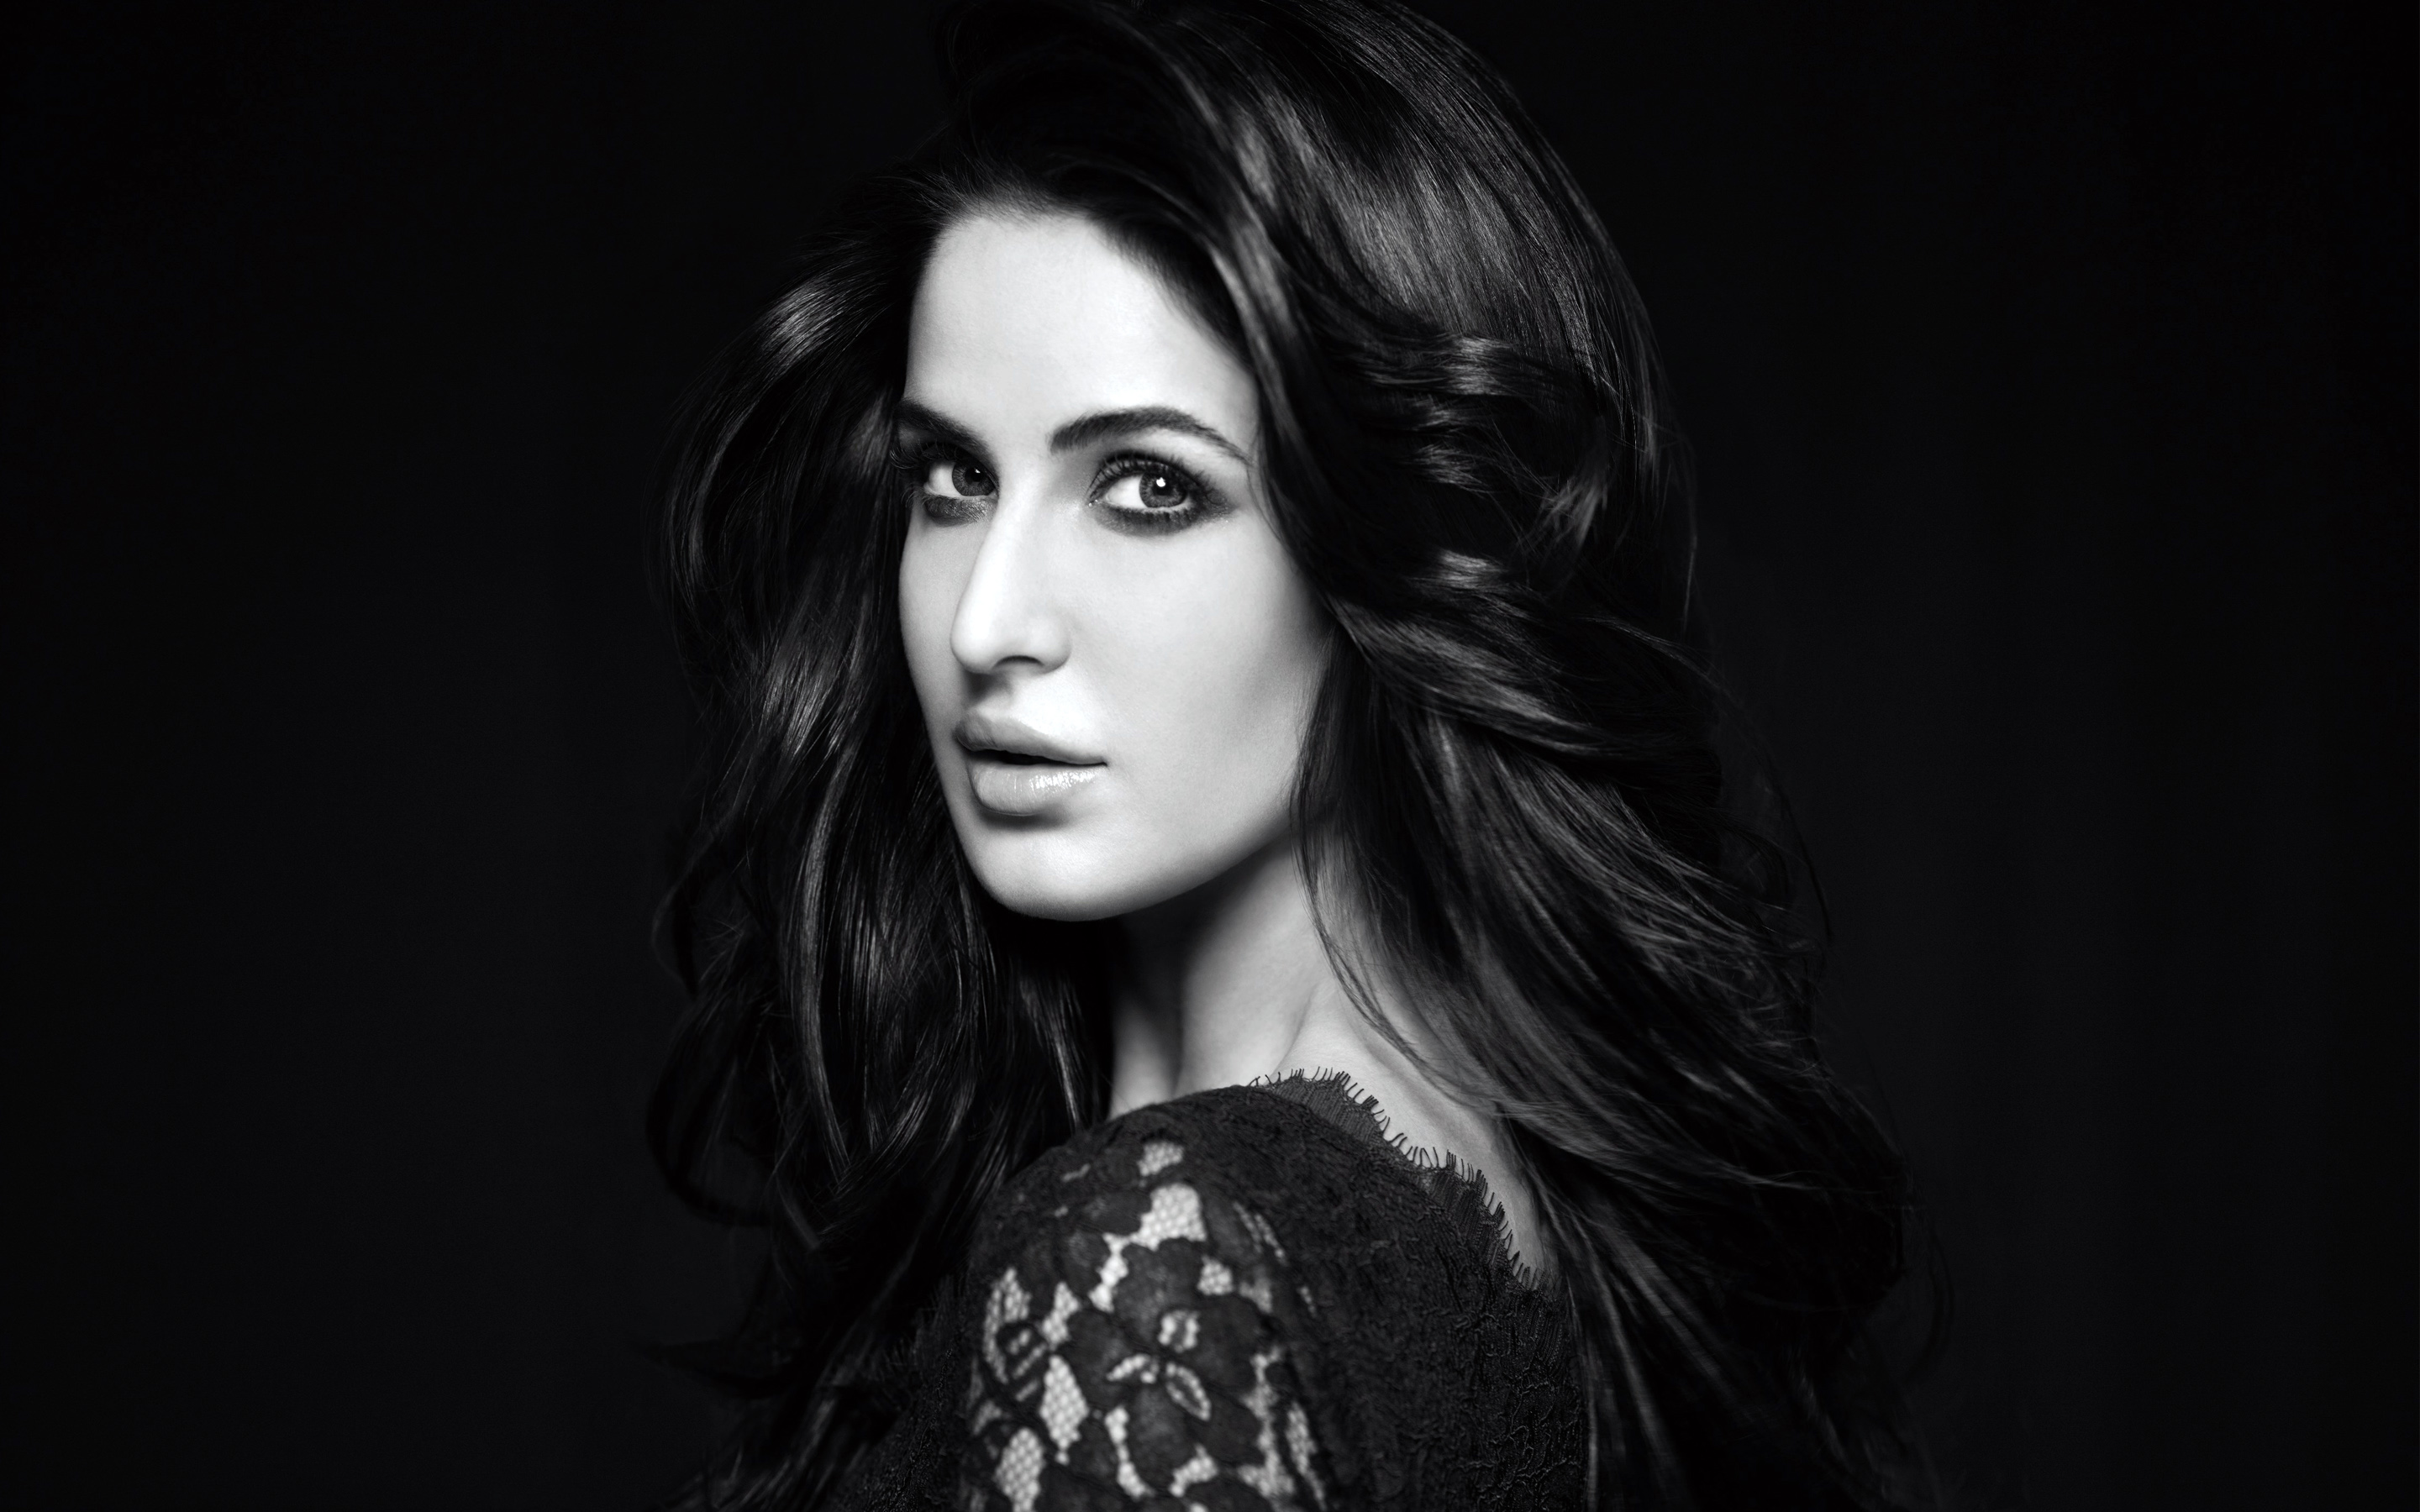 1080x1920 Katrina Kaif Black And White Wallpapers Iphone 7